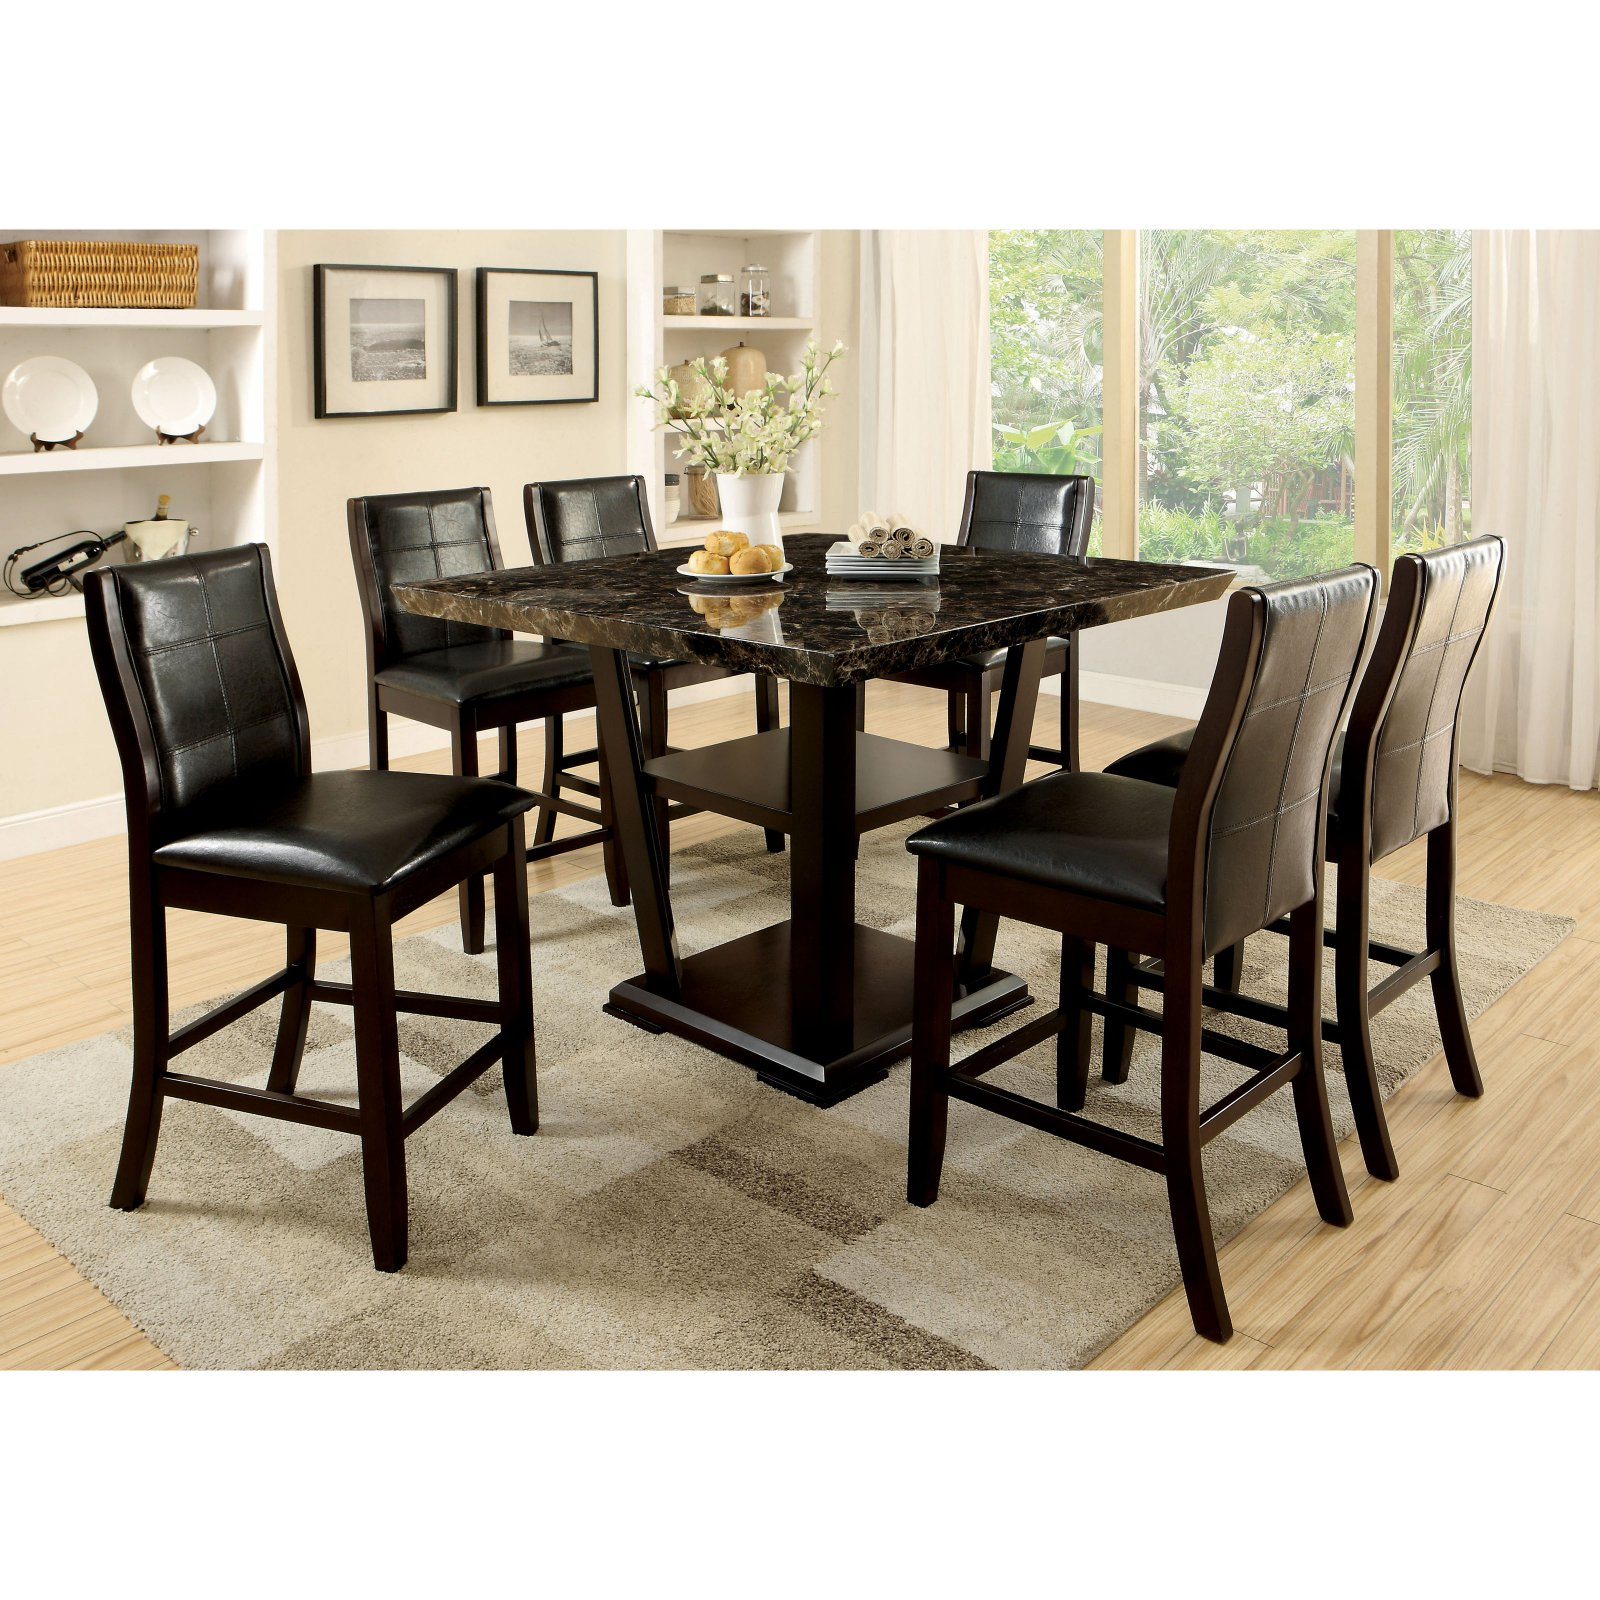 Furniture of America Newrock Counter Height Faux Marble Dining Table